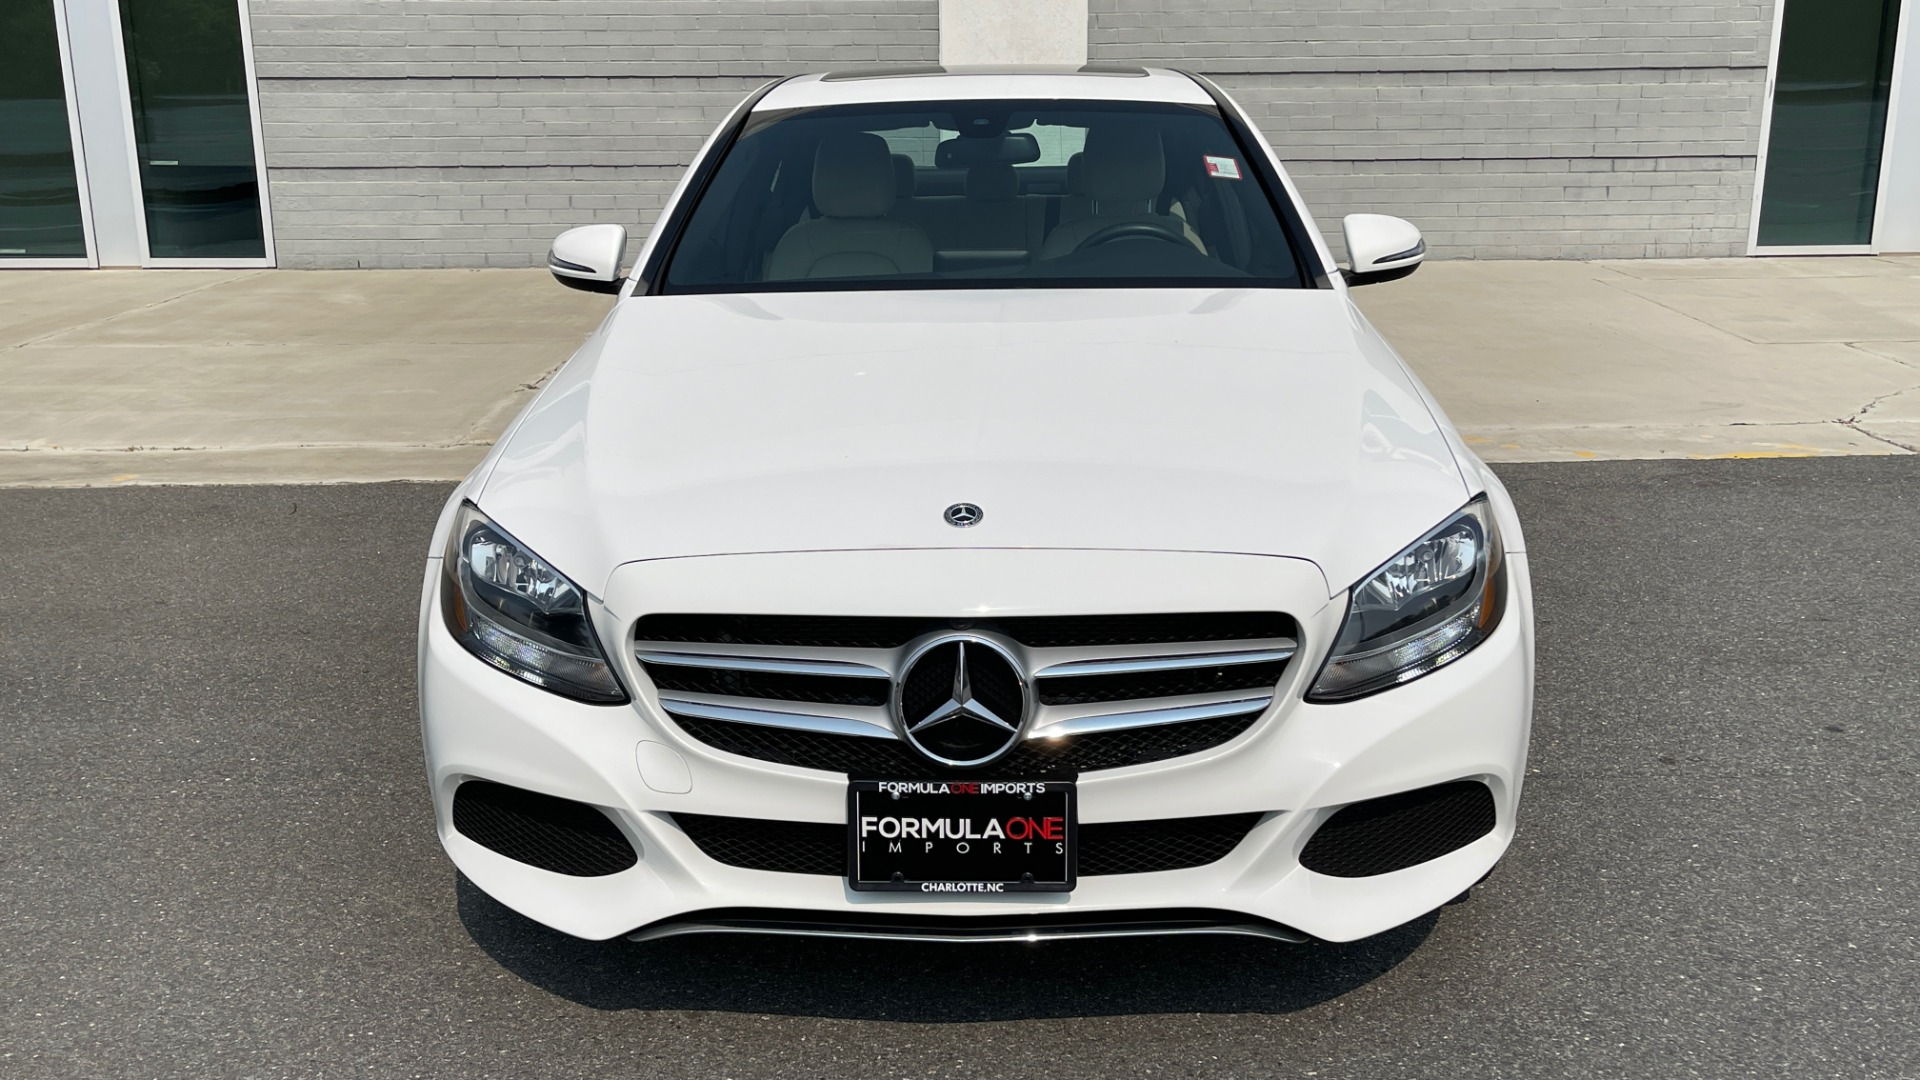 Used 2018 Mercedes-Benz C-Class C 300 4MATIC / PREMIUM / BURMESTER / HTD STS / SUNROOF / REARVIEW for sale $33,995 at Formula Imports in Charlotte NC 28227 11